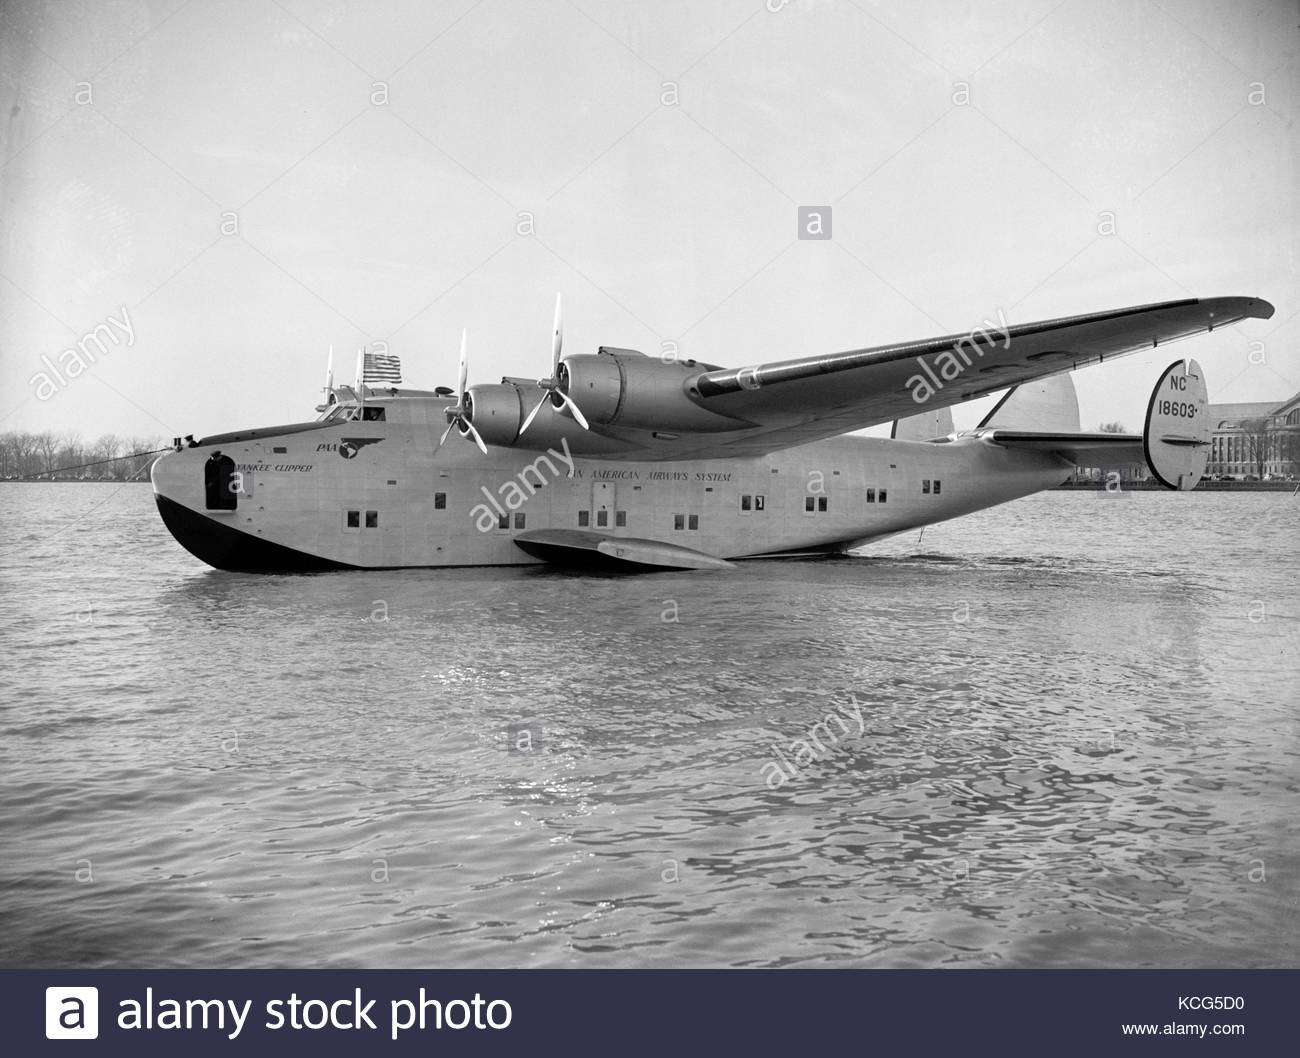 Airplane in water - Stock Image